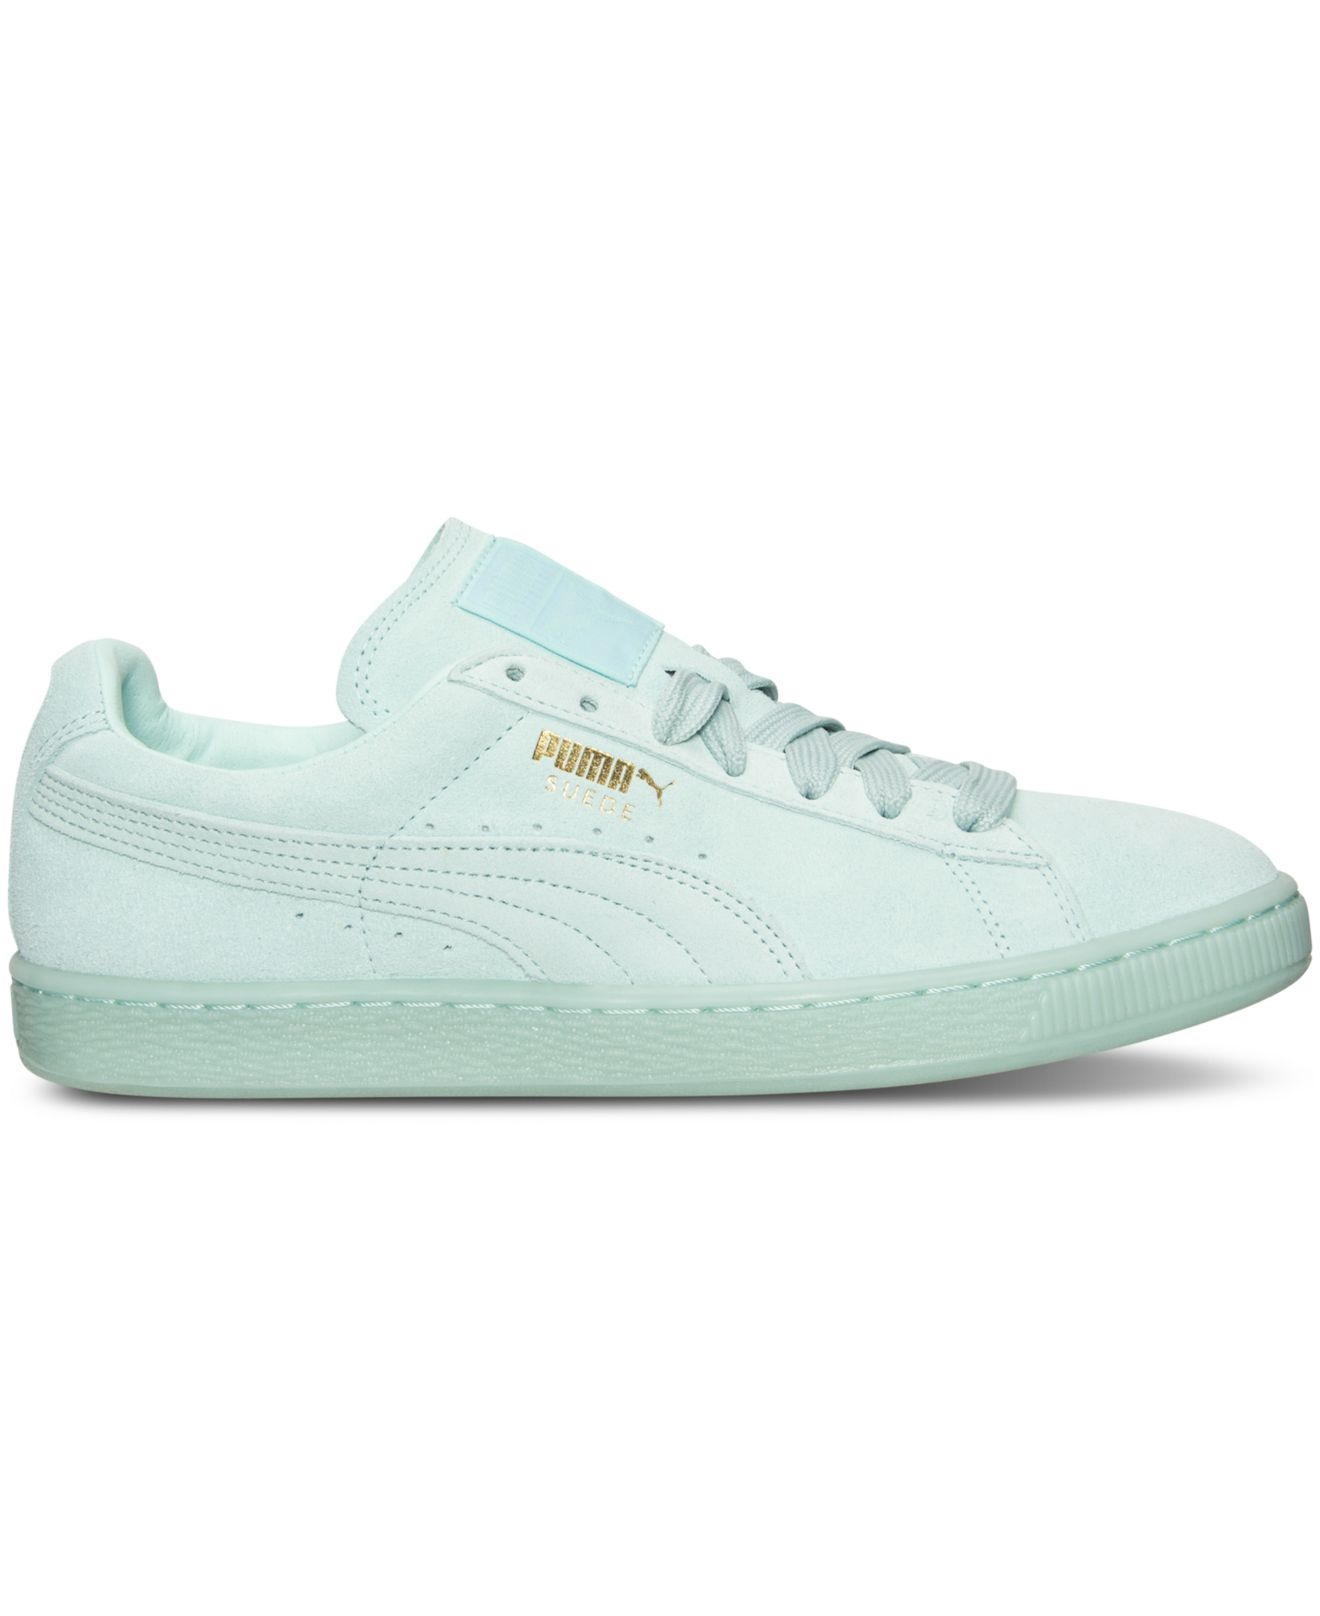 Lyst - PUMA Men s Suede Classic Iced Mono Casual Sneakers From ... fbaddc22f